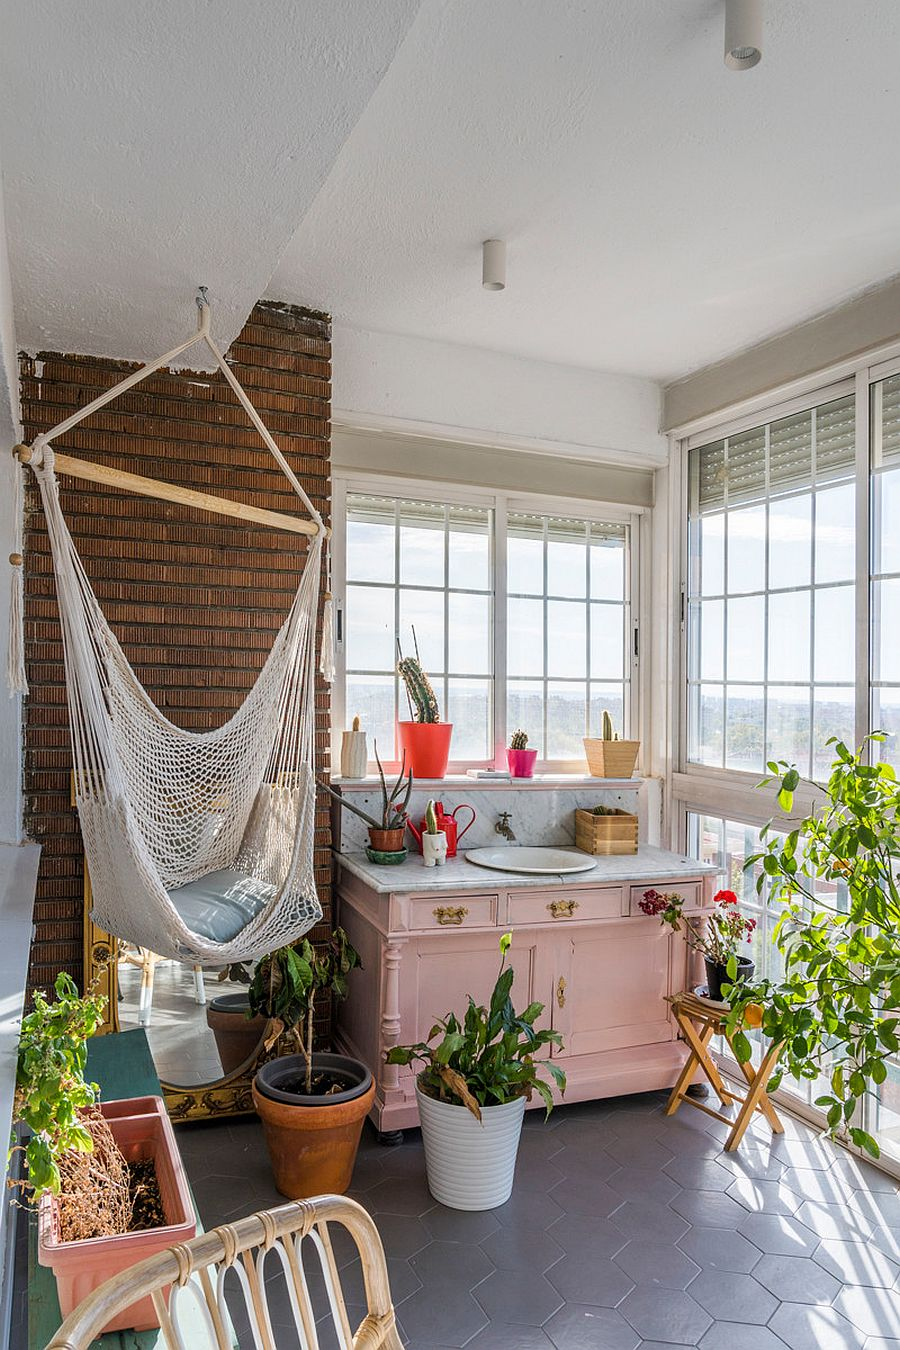 Tiny shabby chic sunroom with bright pops of color and a hammock in the corner